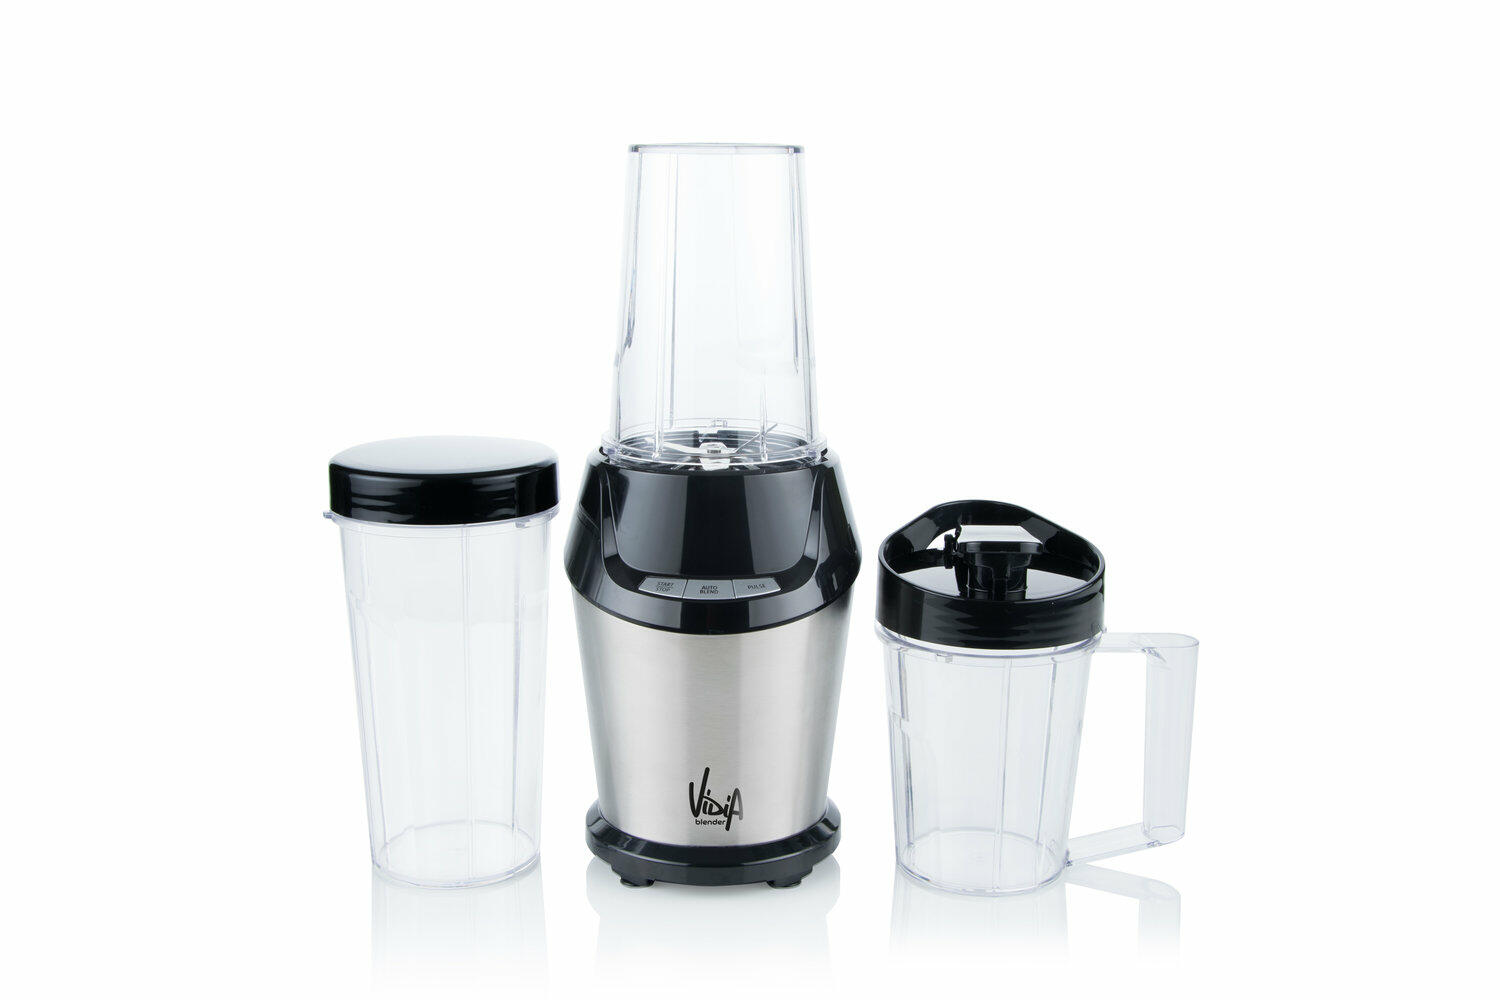 Vidia Personal Blender PBL-001 complete